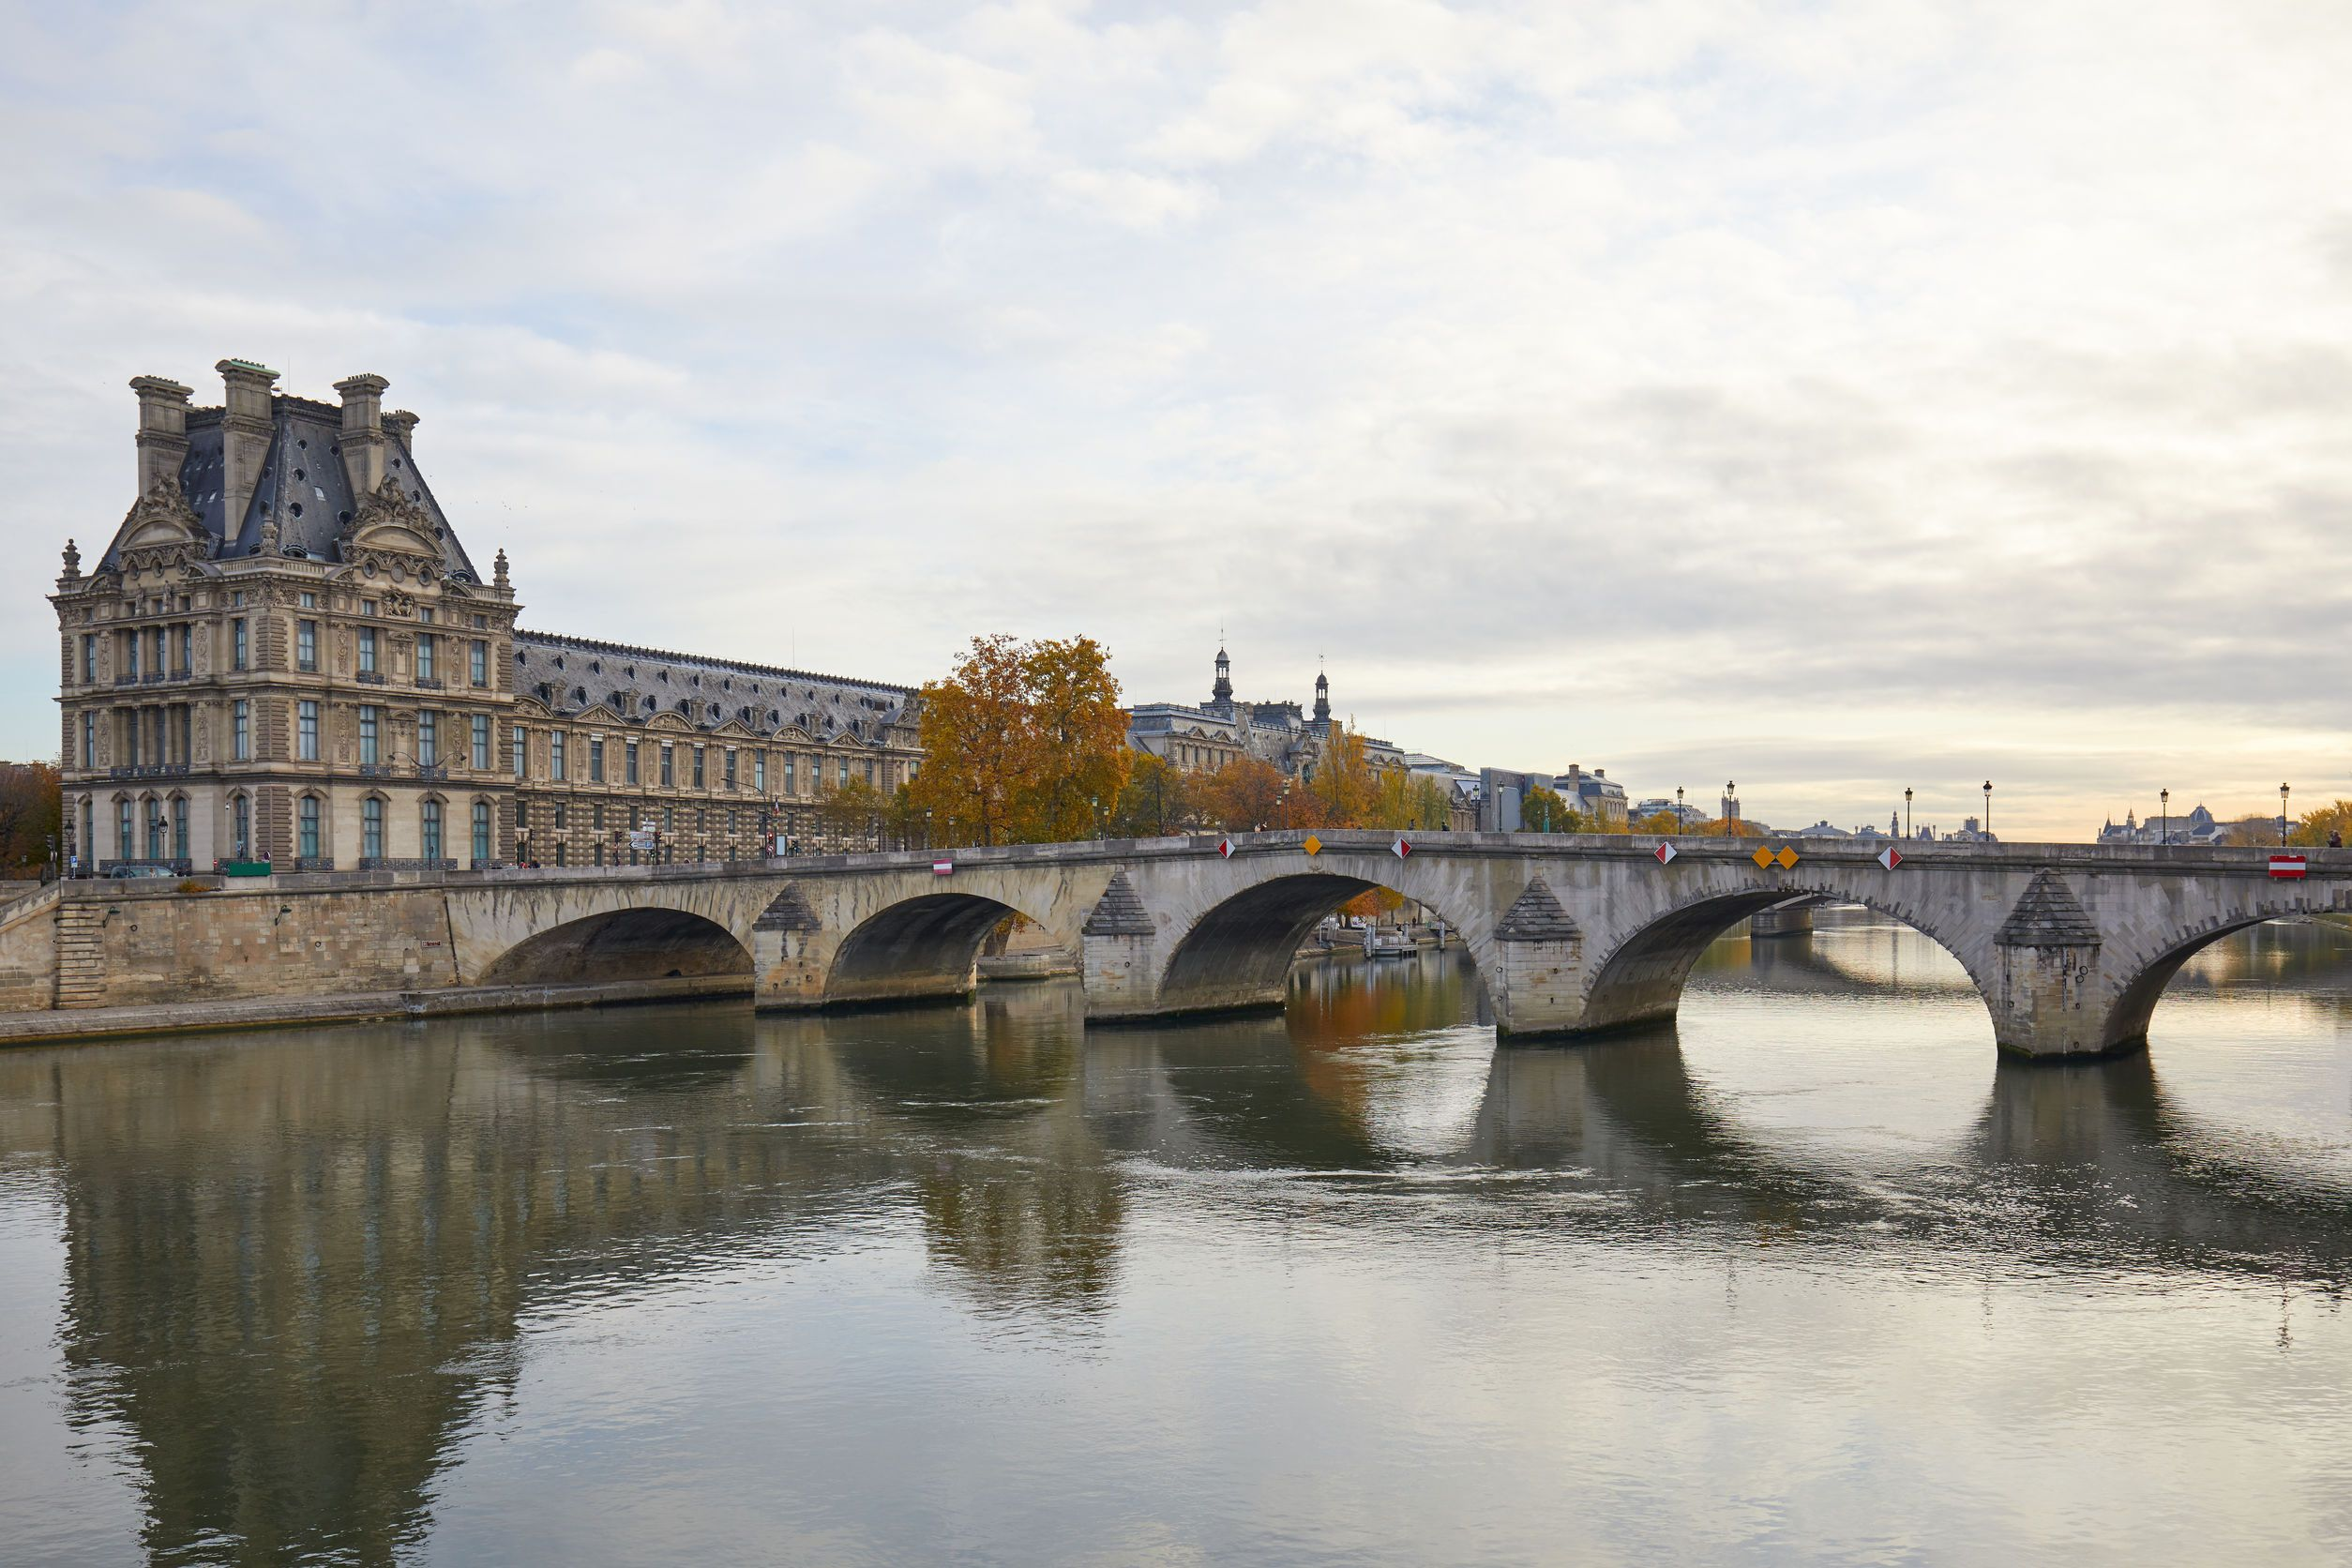 Famous museums and attractions like the louvre are